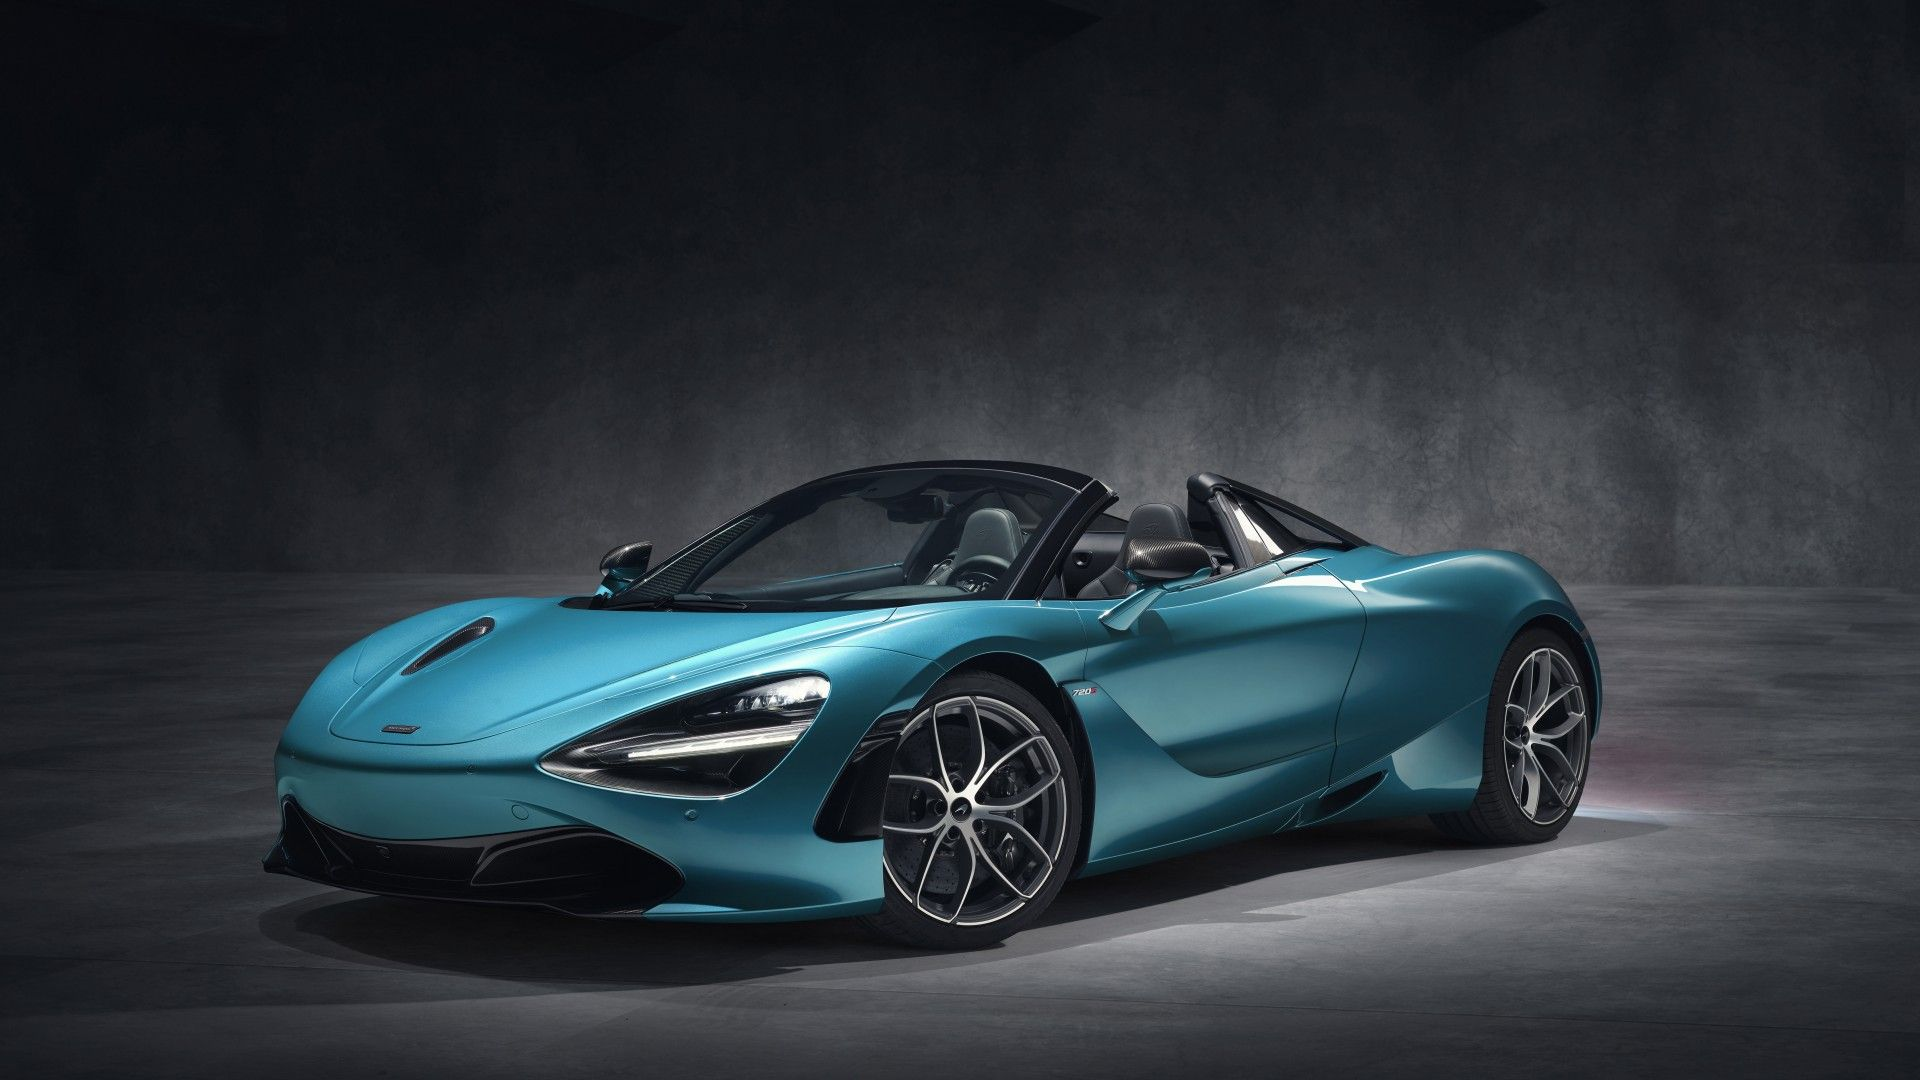 The Mclaren 720s Spider Offers A Thrilling Summer Drive With Images Cool Sports Cars British Sports Cars New Mclaren